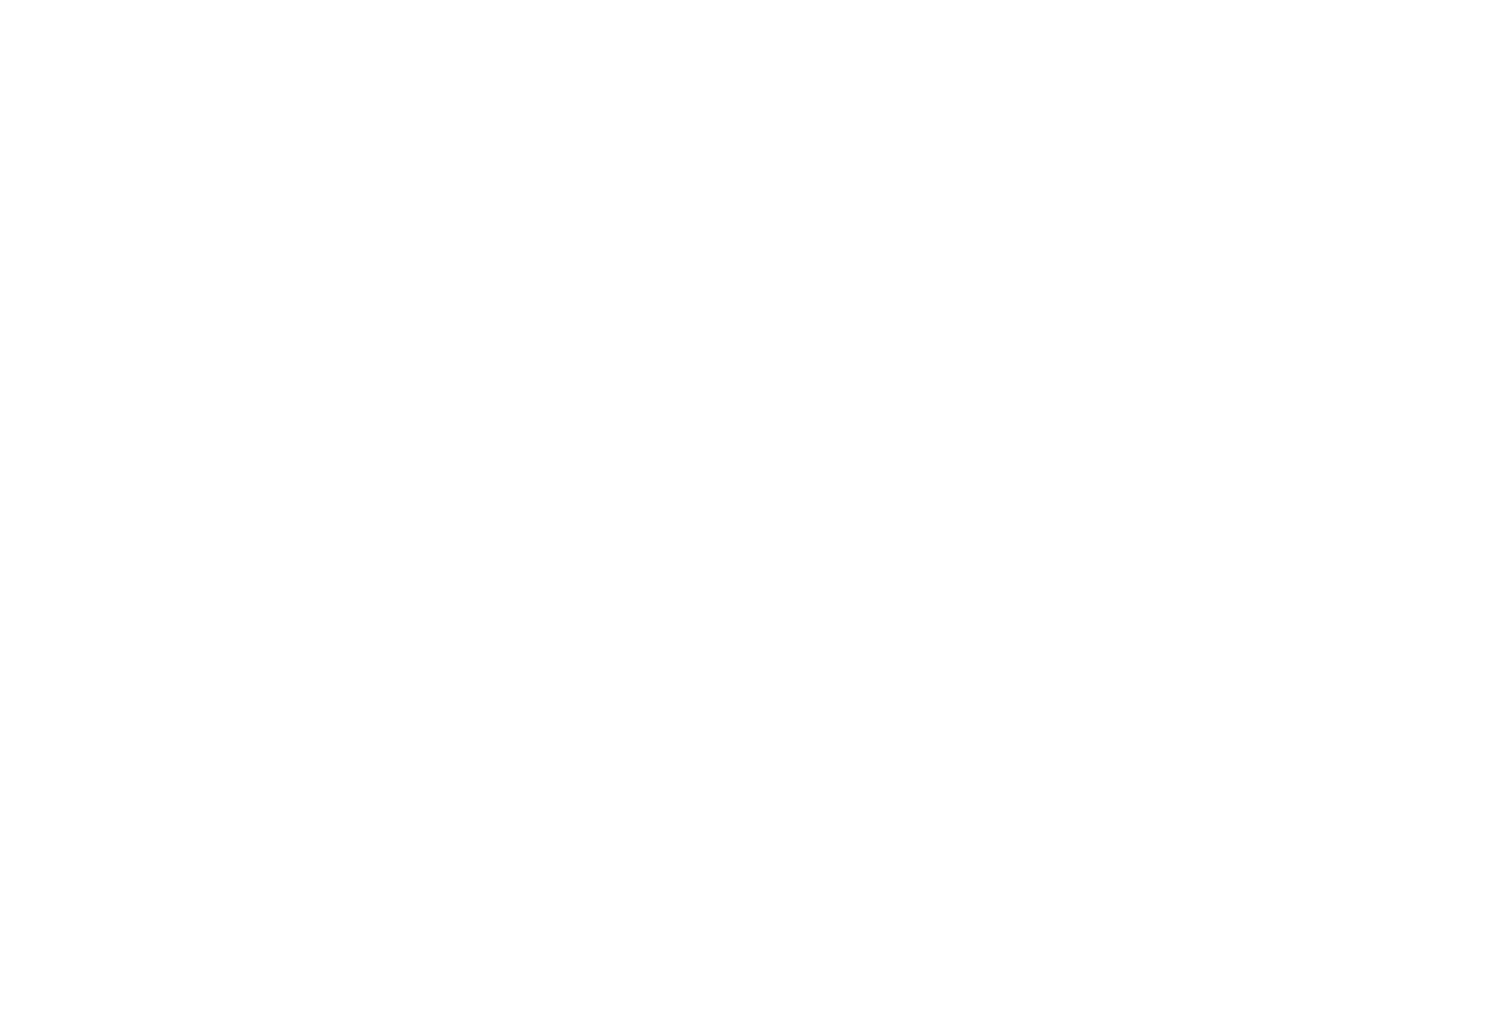 OM grown dancers